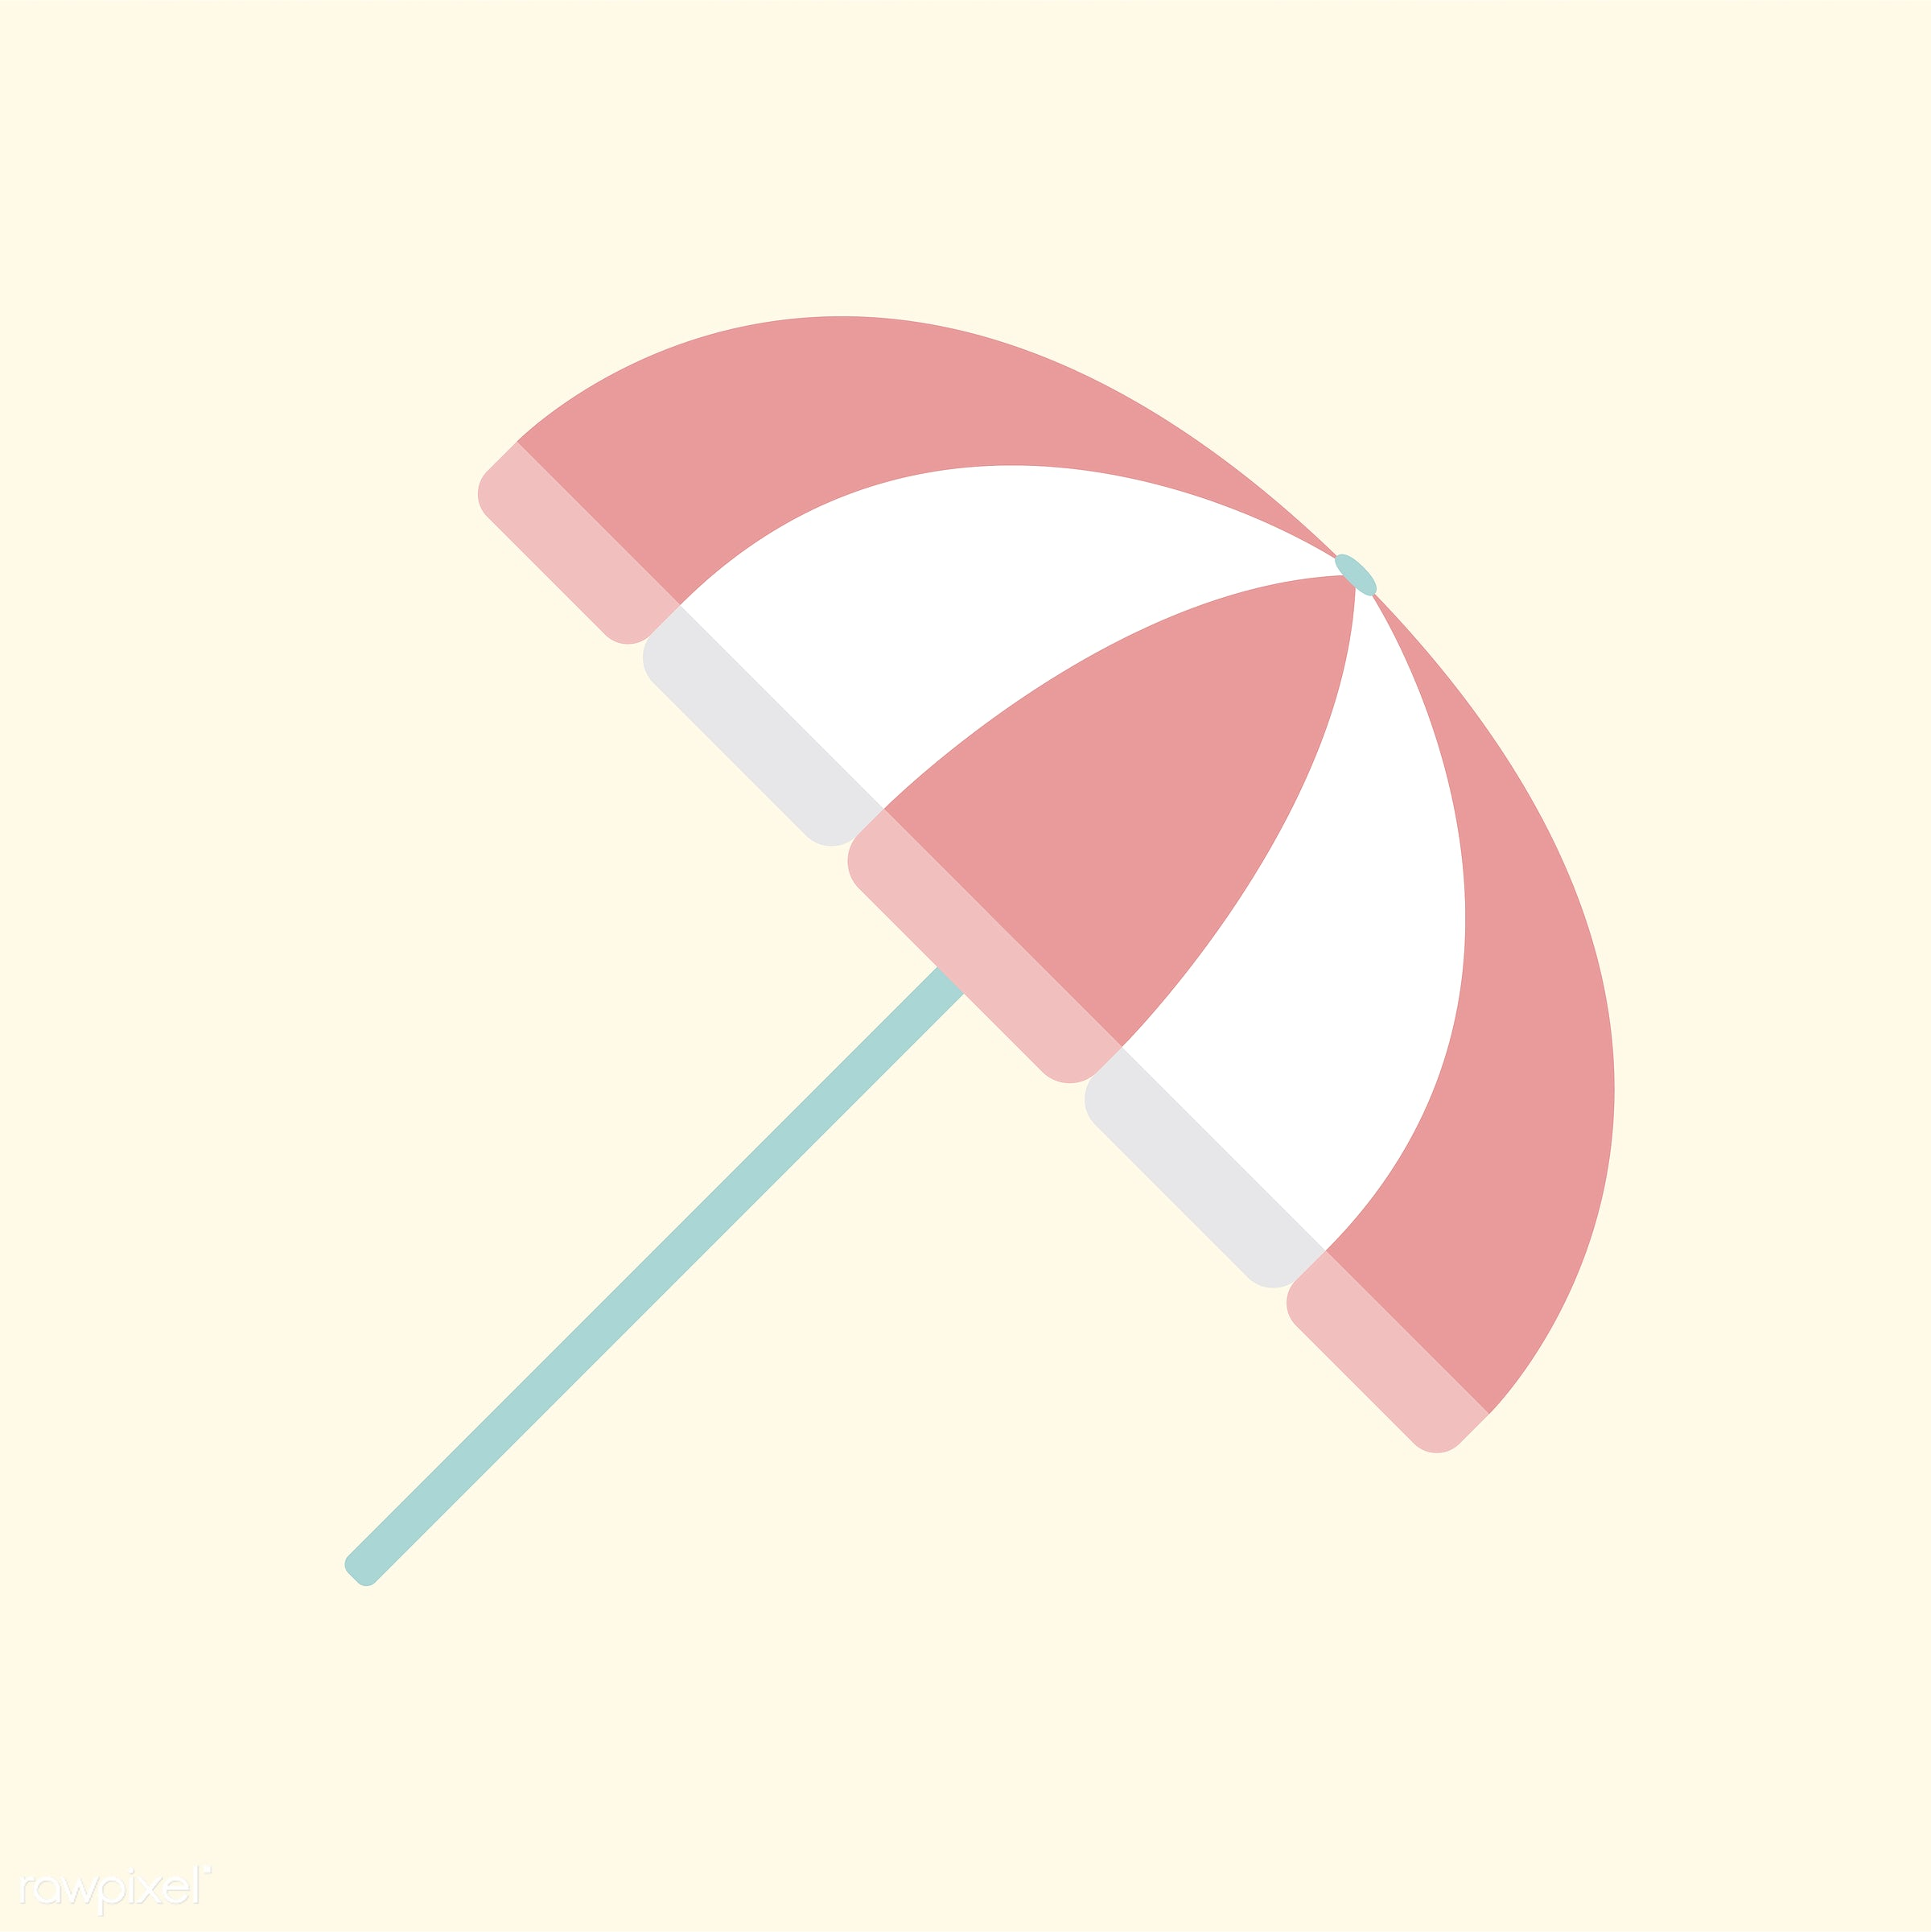 vector, illustration, graphic, cute, sweet, girly, pastel, umbrella, parasol, summer, isolated, style